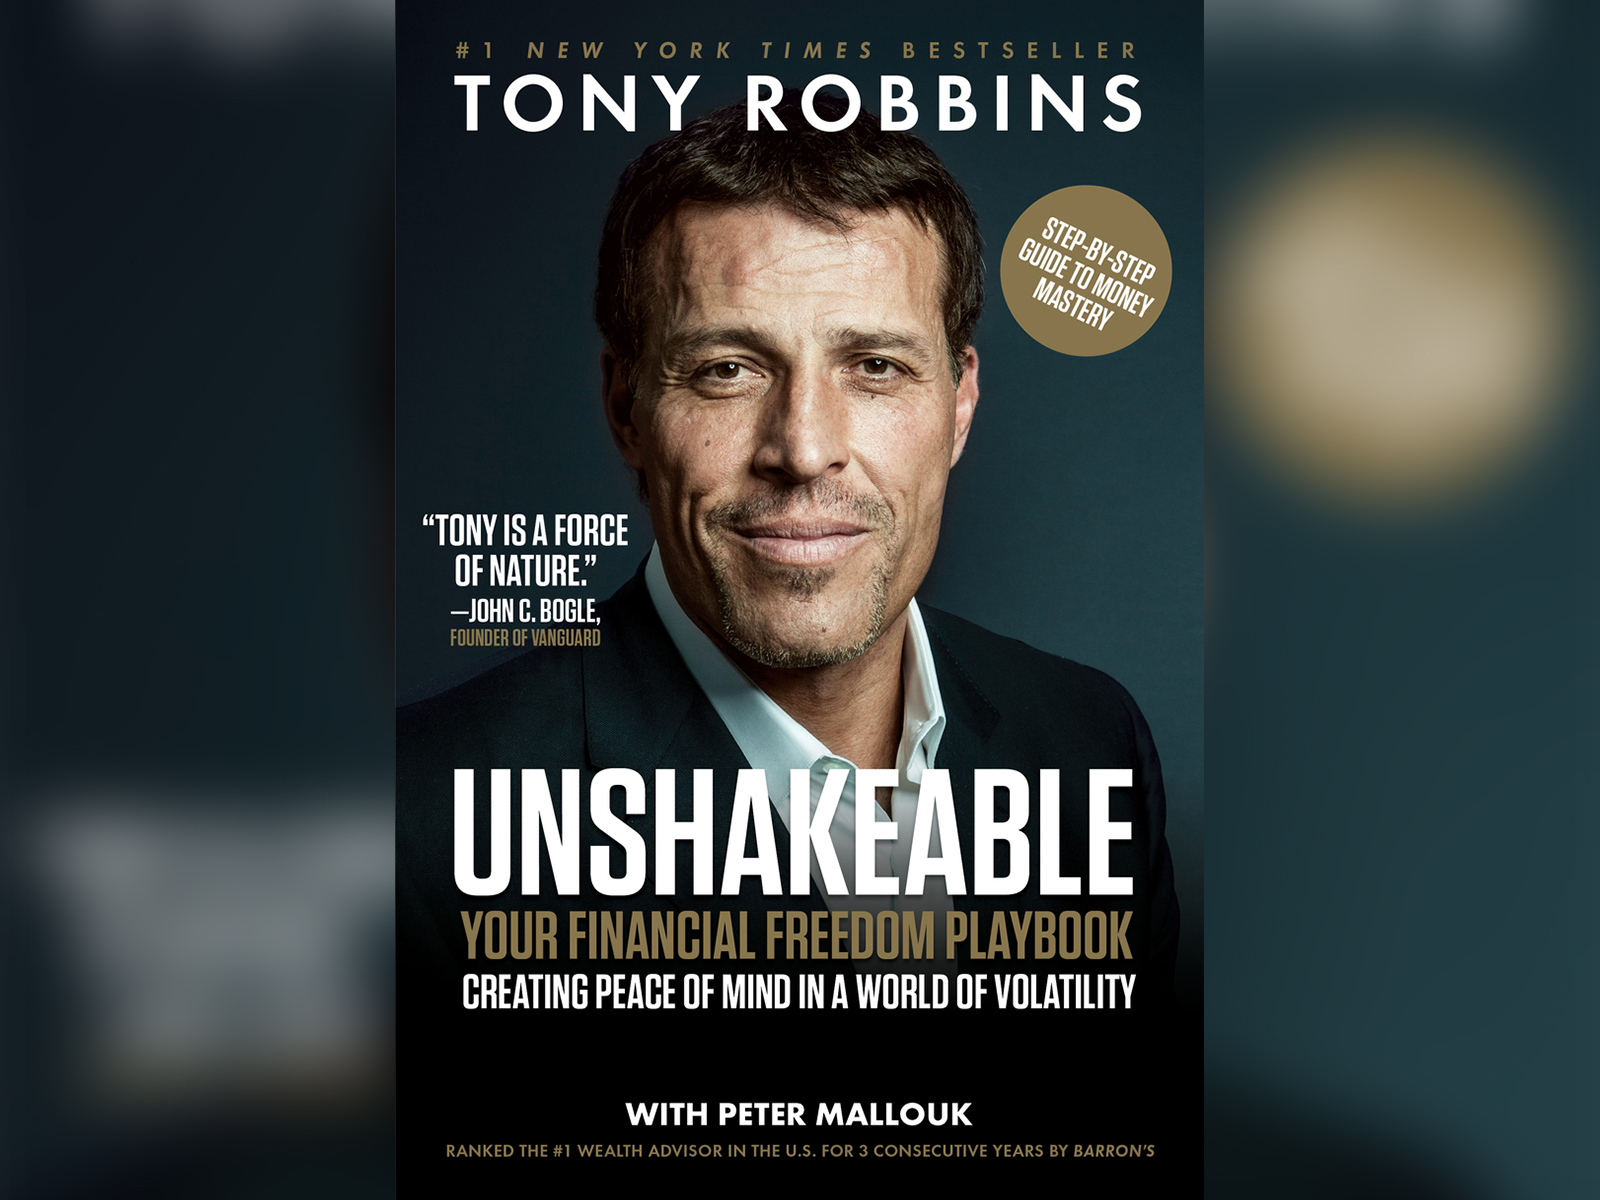 Unshakeable: Tony Robbins Book Review